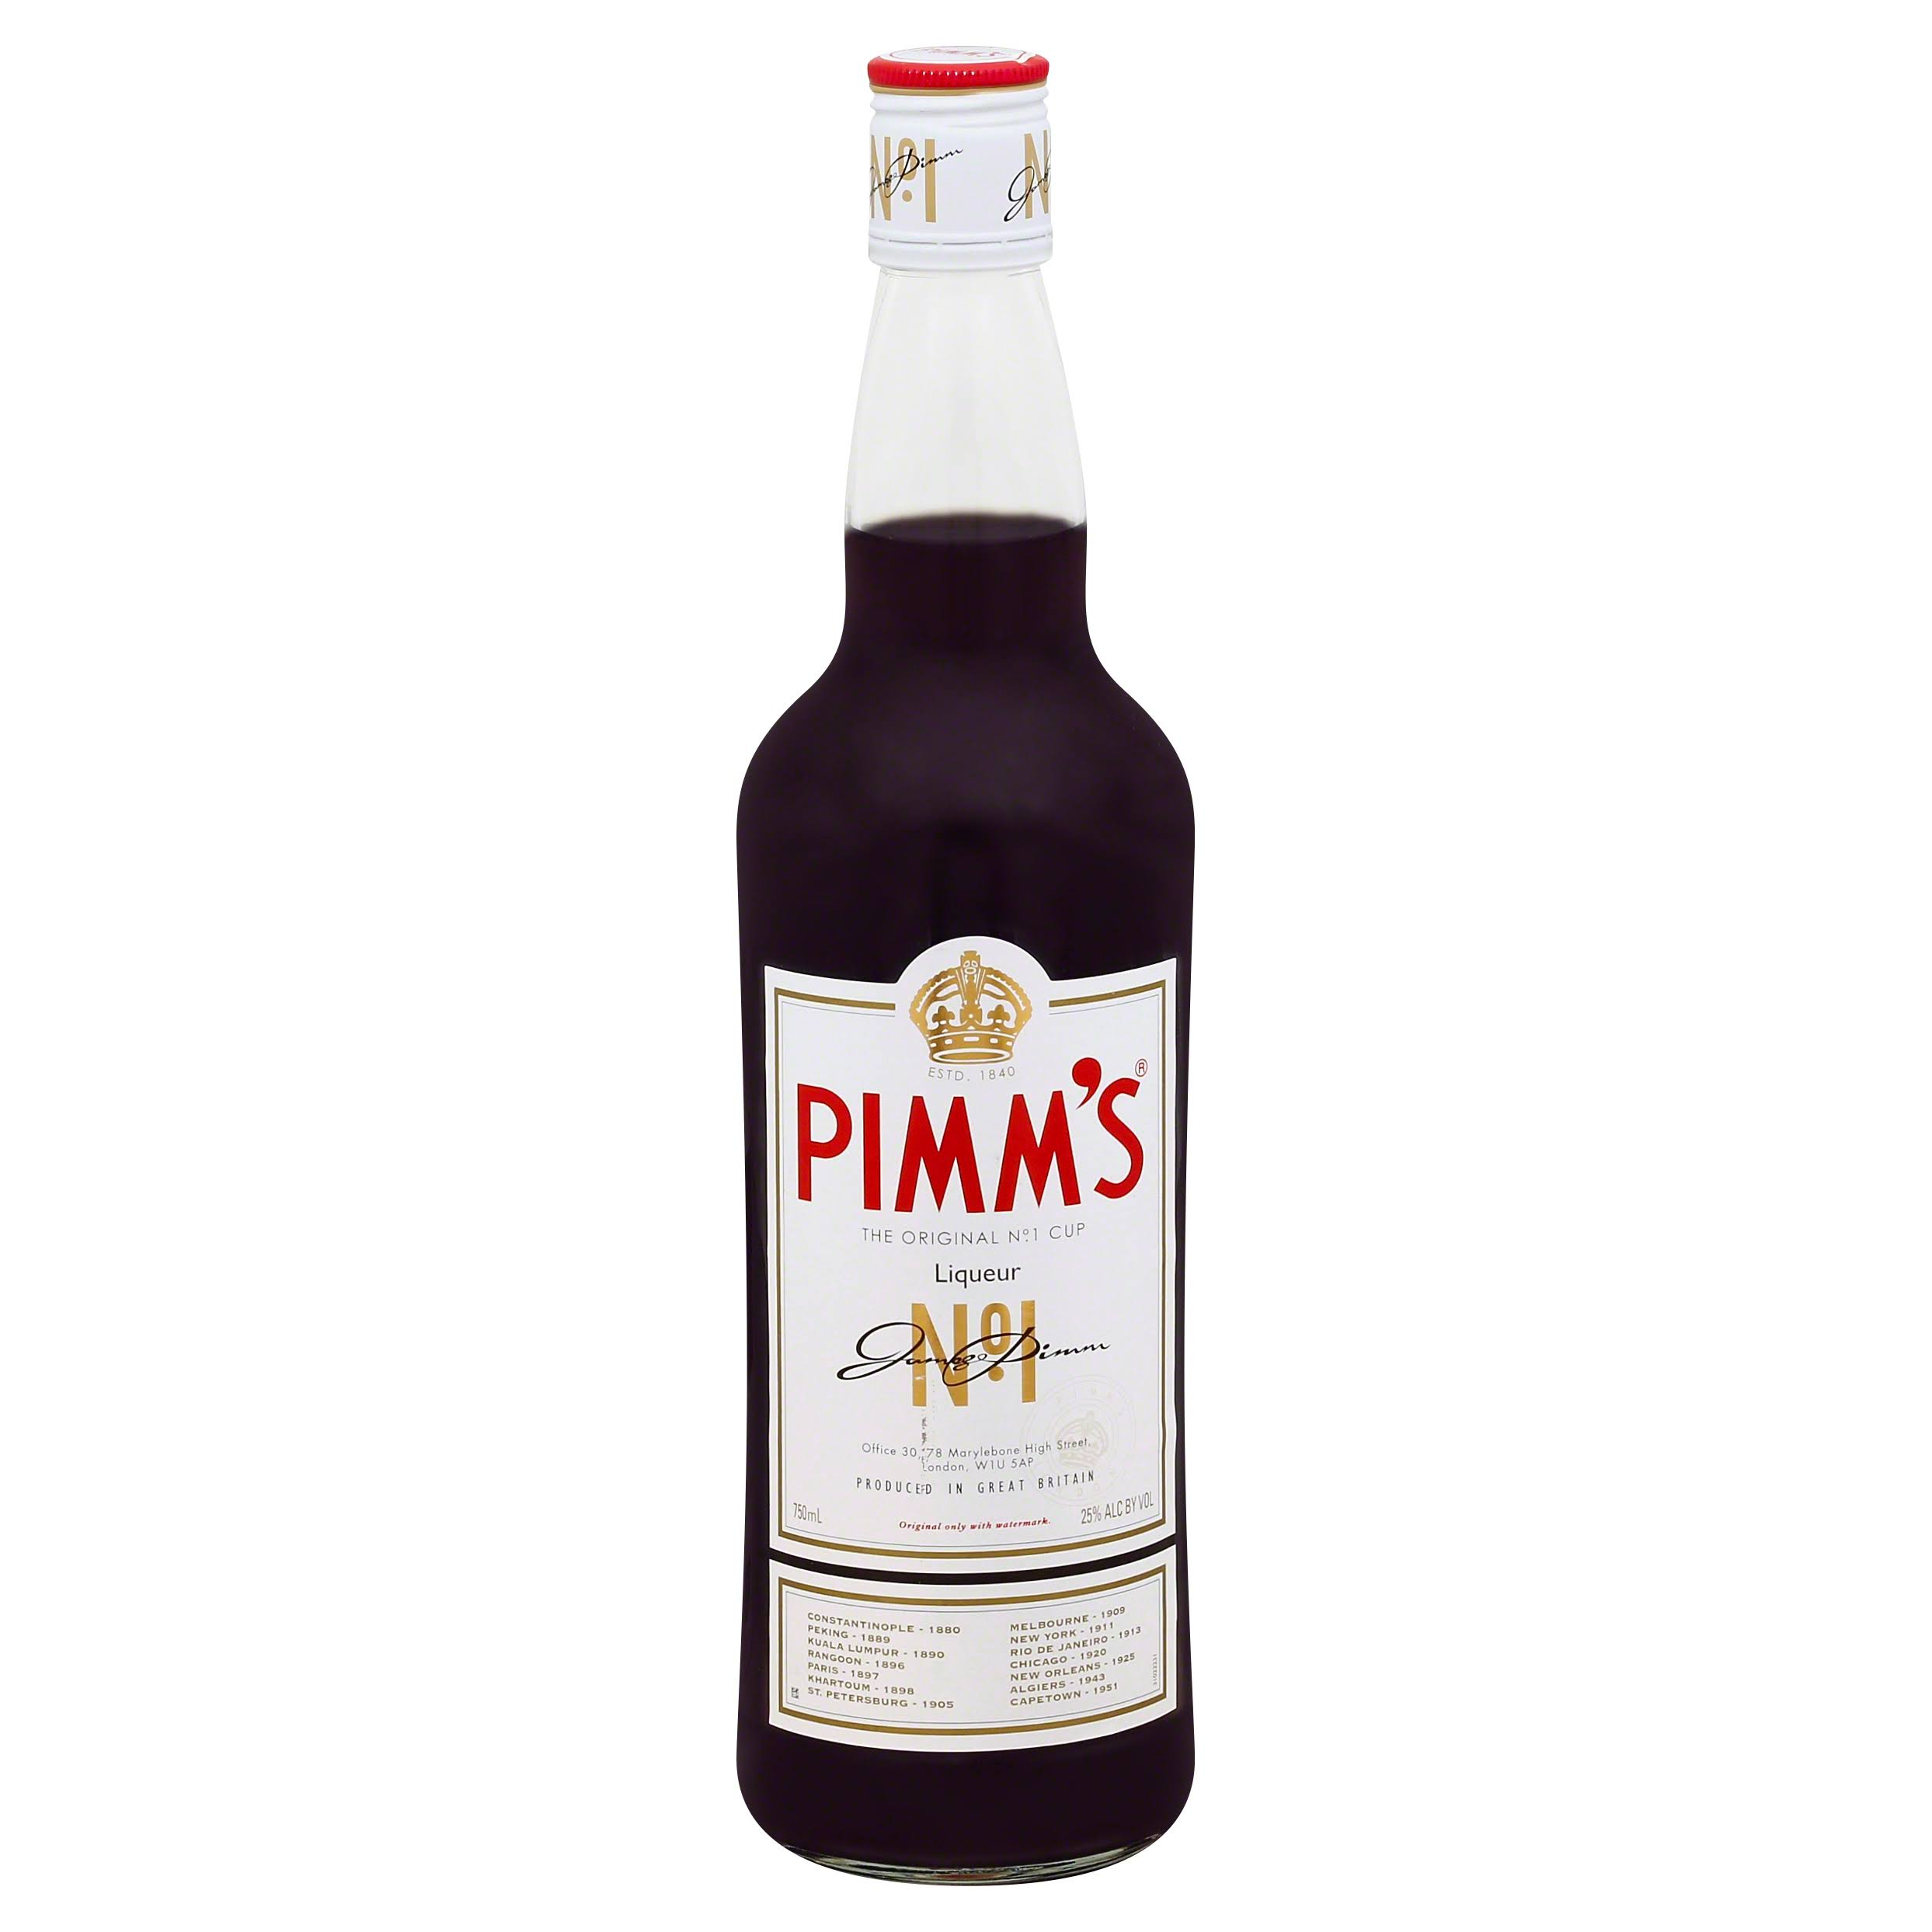 Pimms Liqueur, The Original No. 1 Cup - 750 ml